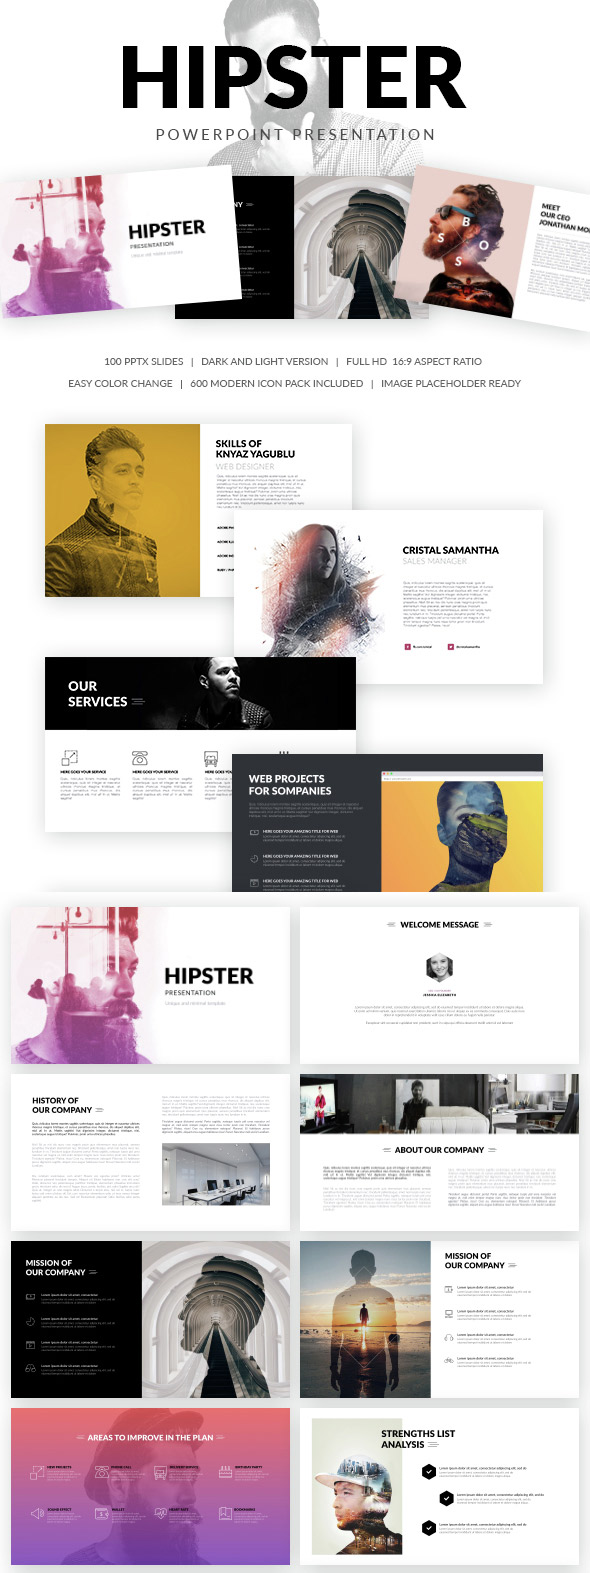 20 ppt templates for simple modern powerpoint presentations hipster modern ppt presentation template toneelgroepblik